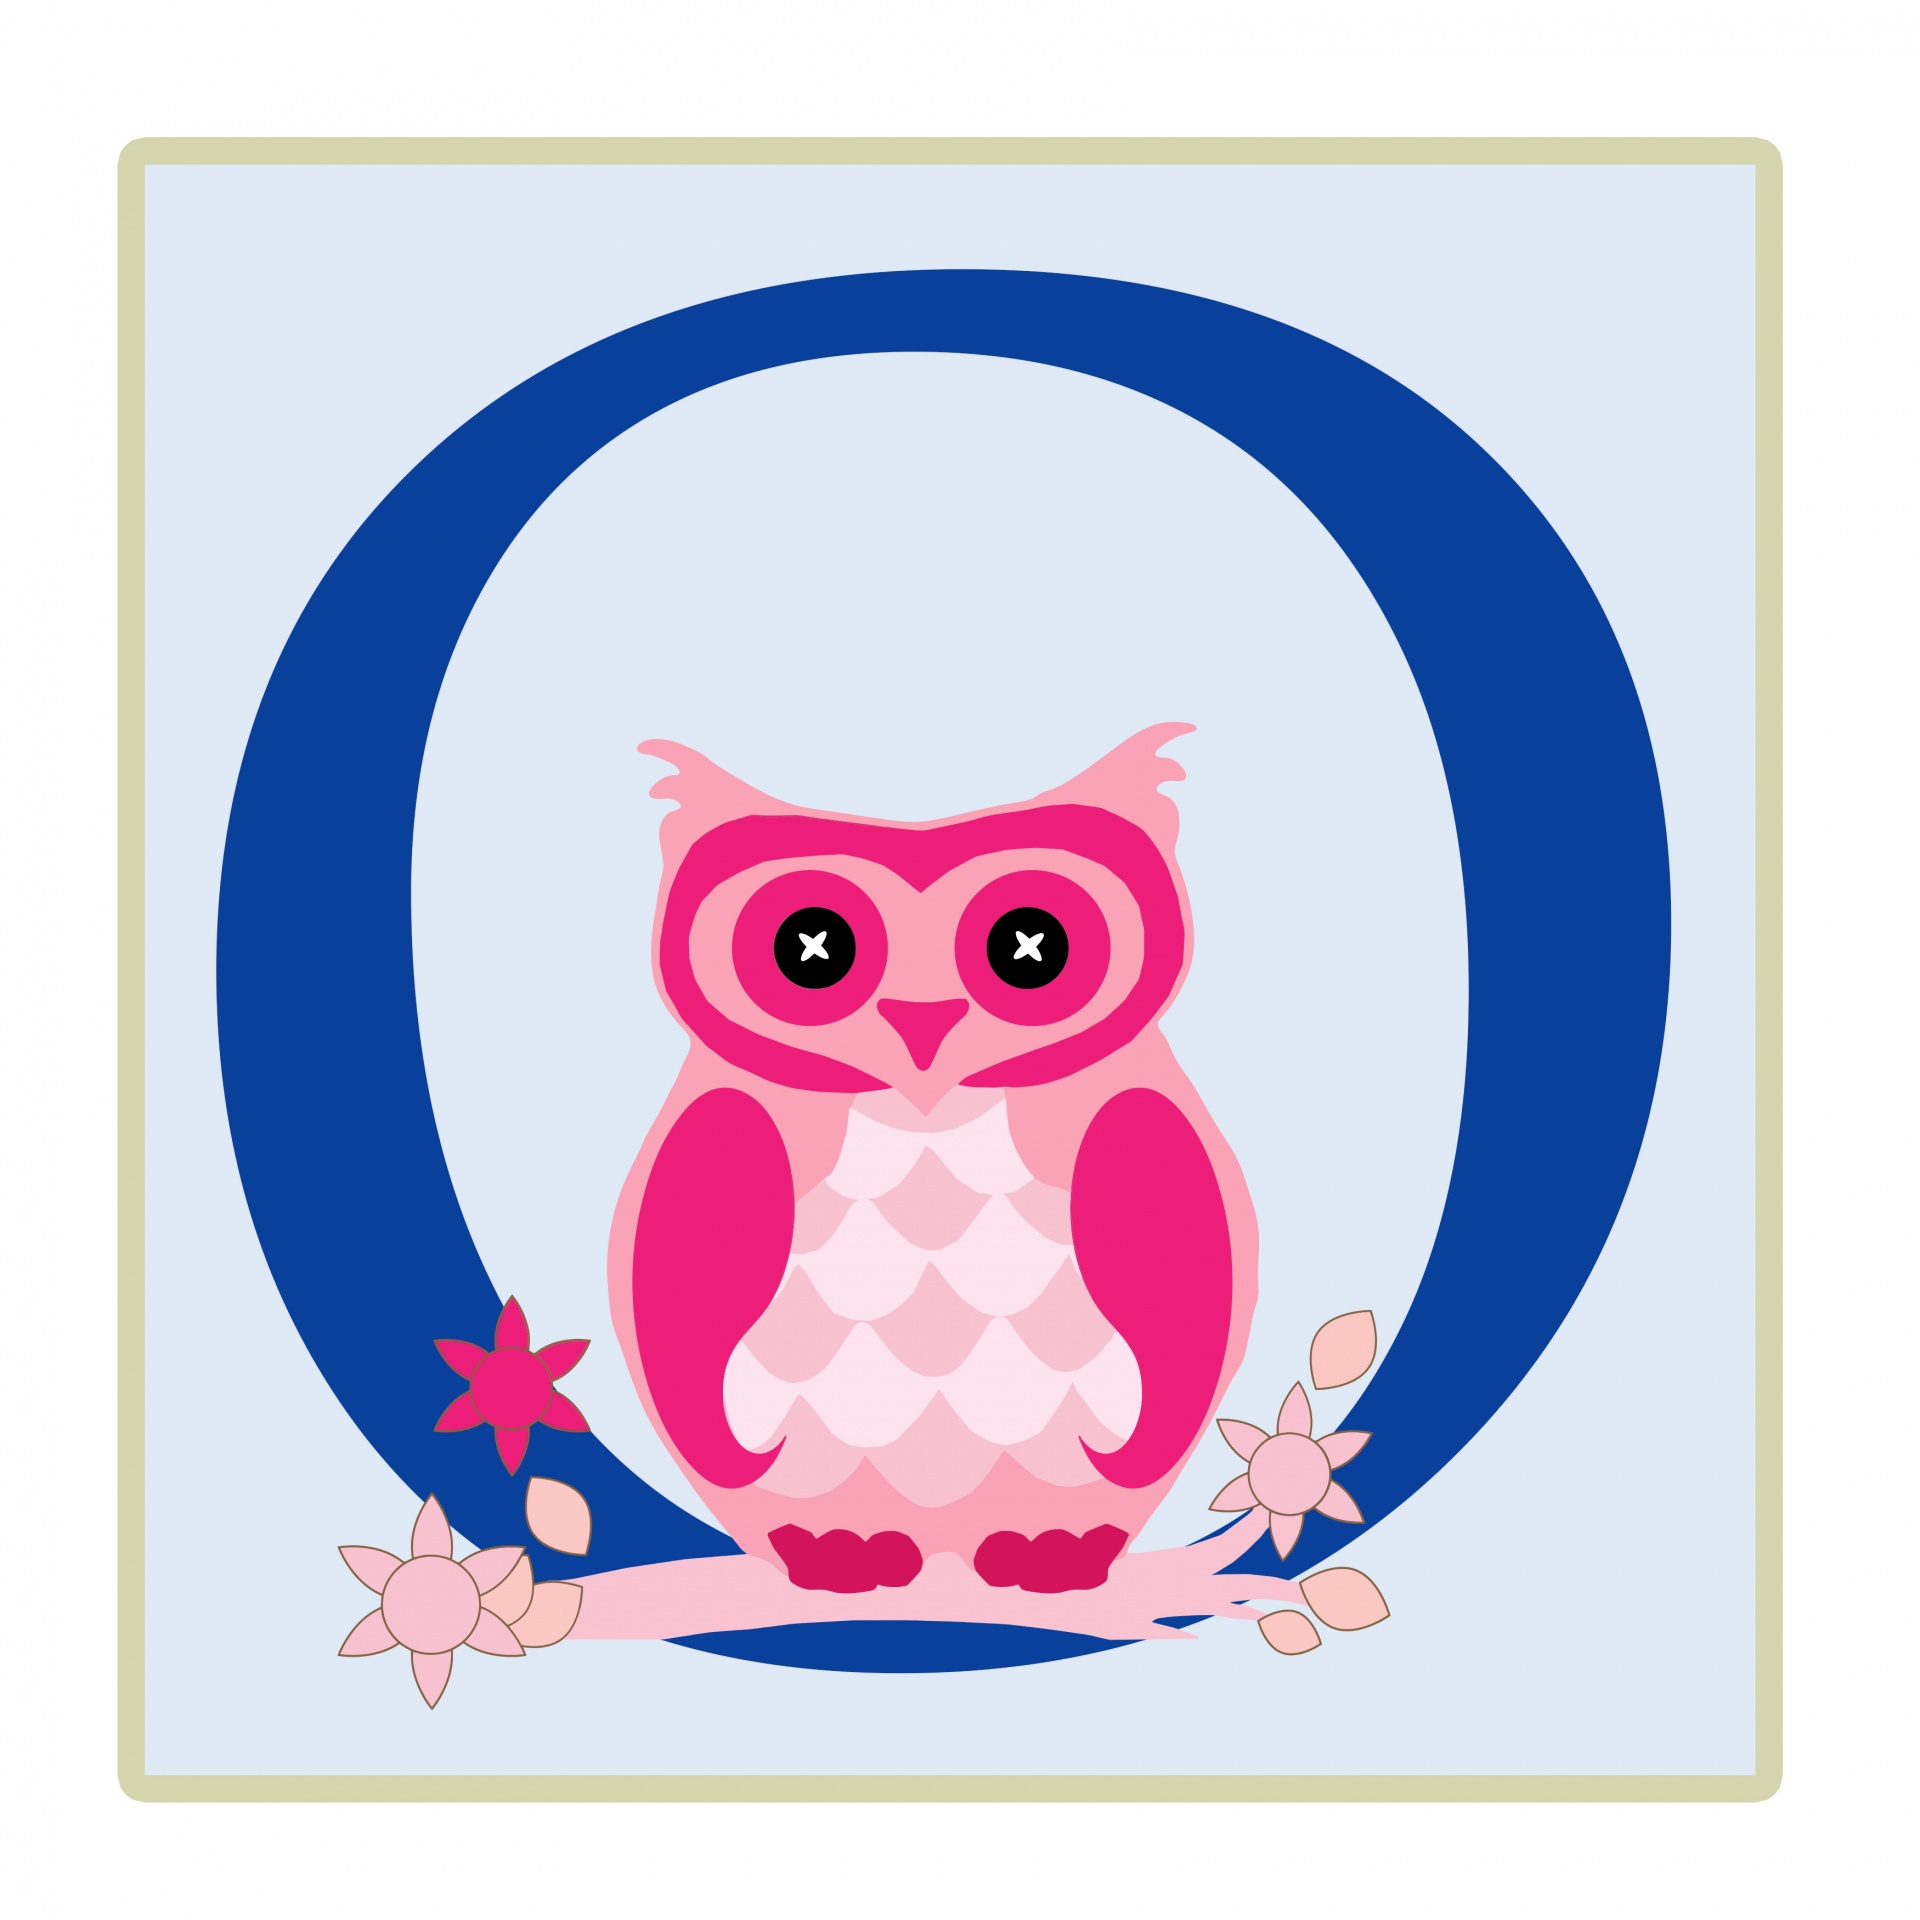 Letter O Owl Illustration Free Stock Photo